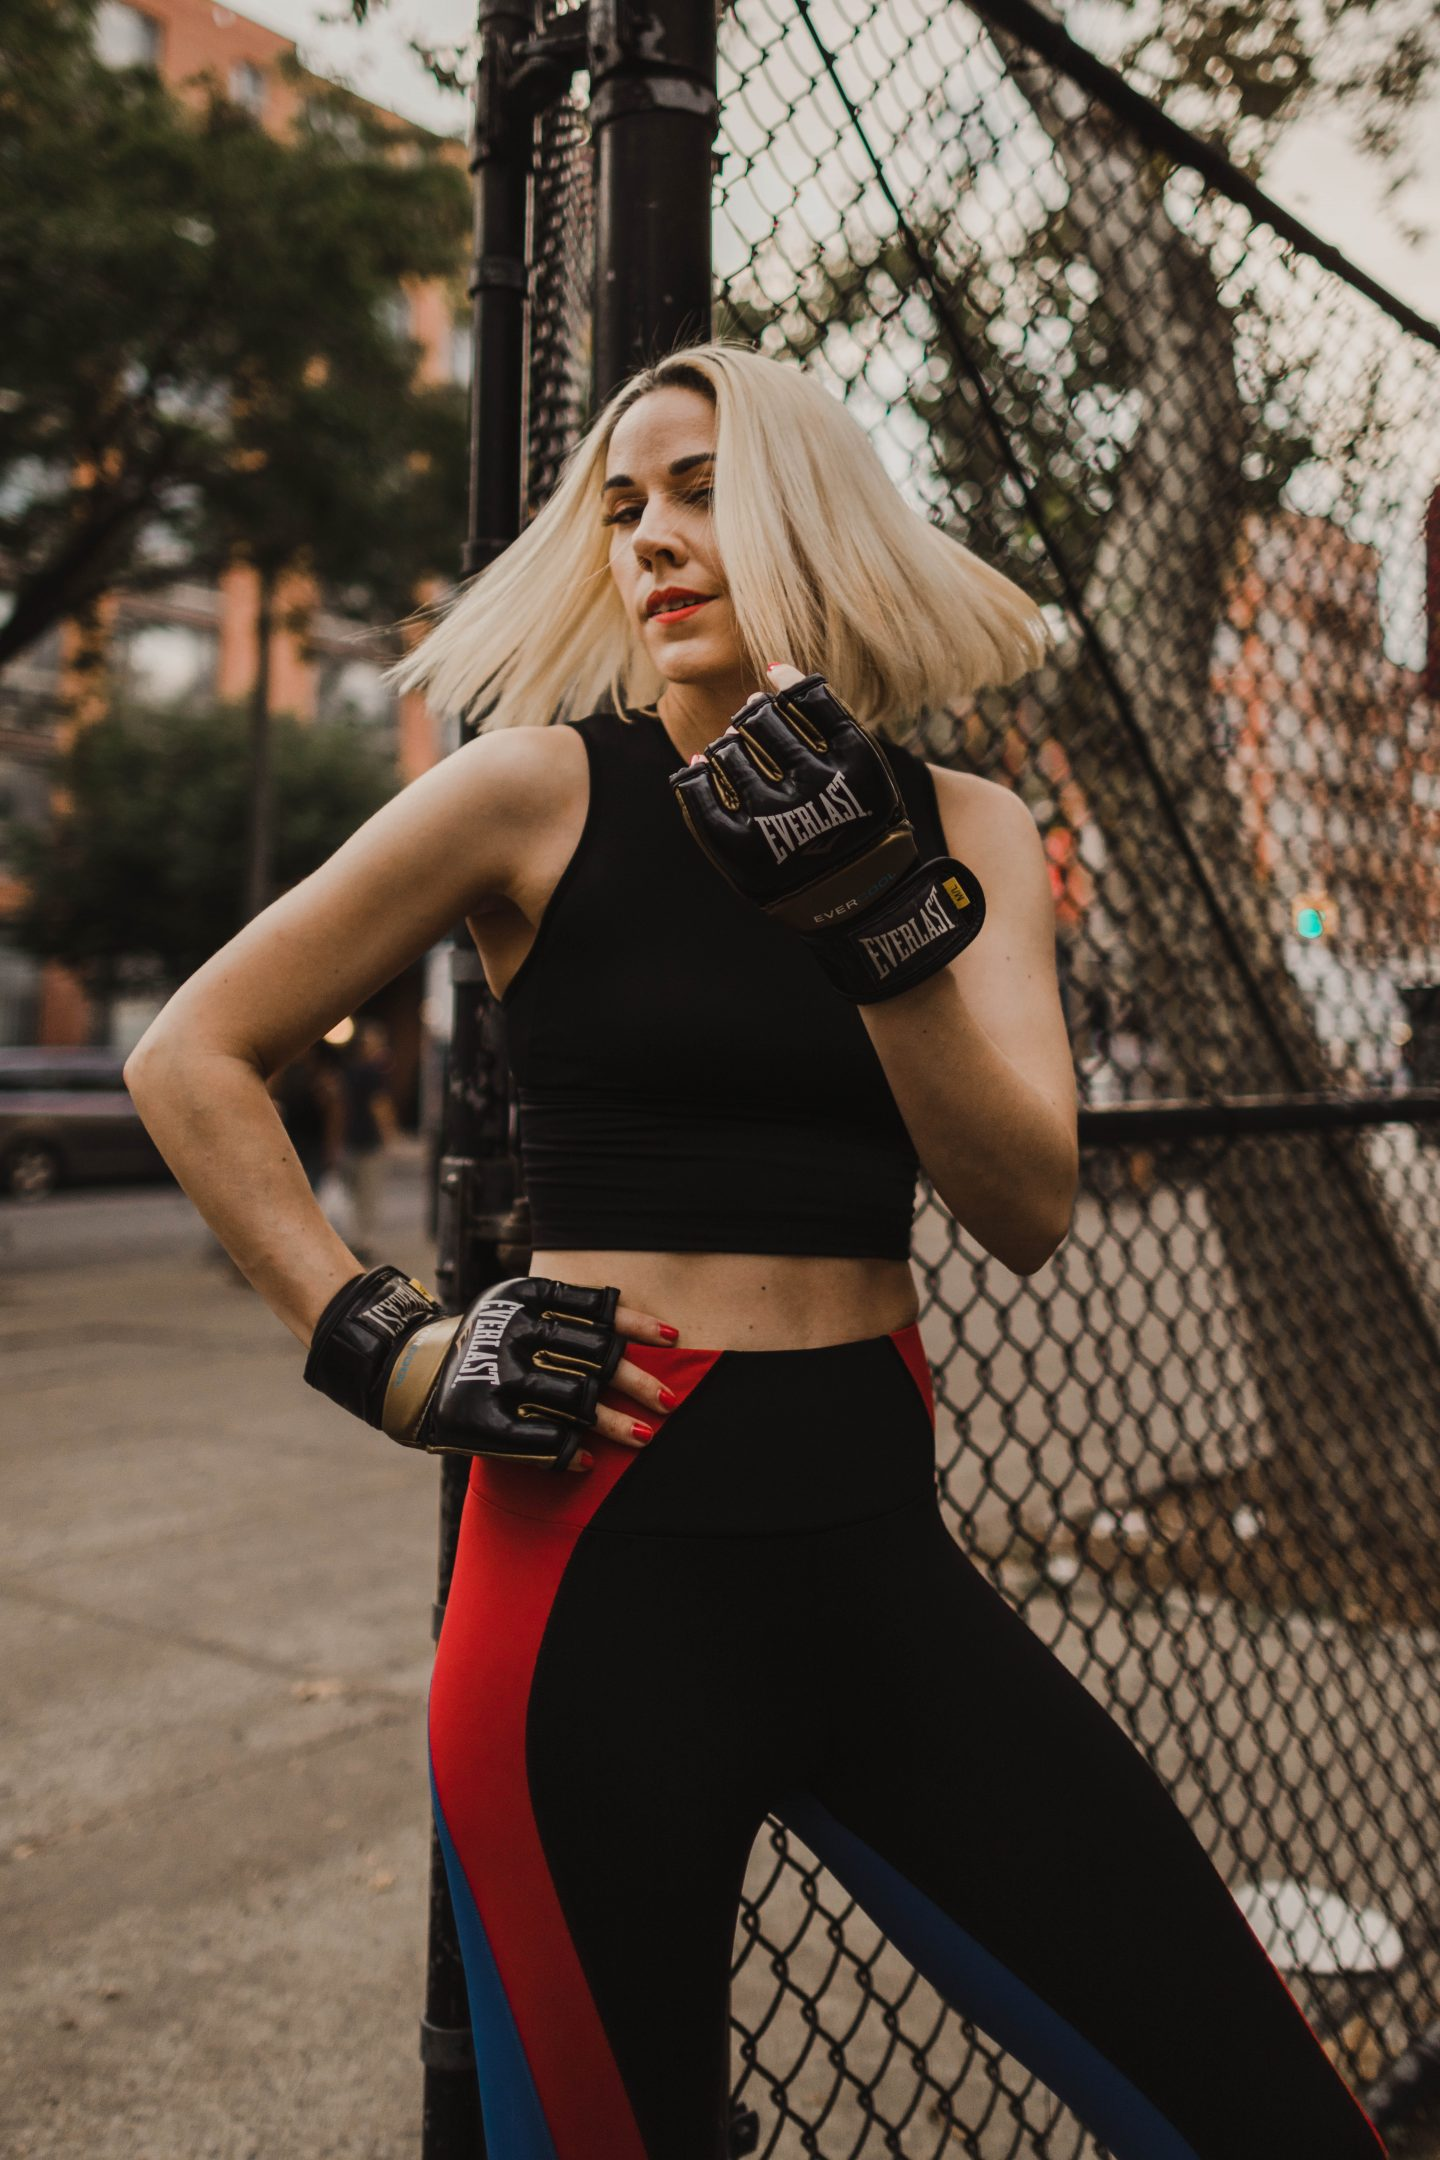 Fitness Predictions for 2020 x Fitness Trends x Michi Rally Leggings x Carbon38 x Workout Outfit Ideas